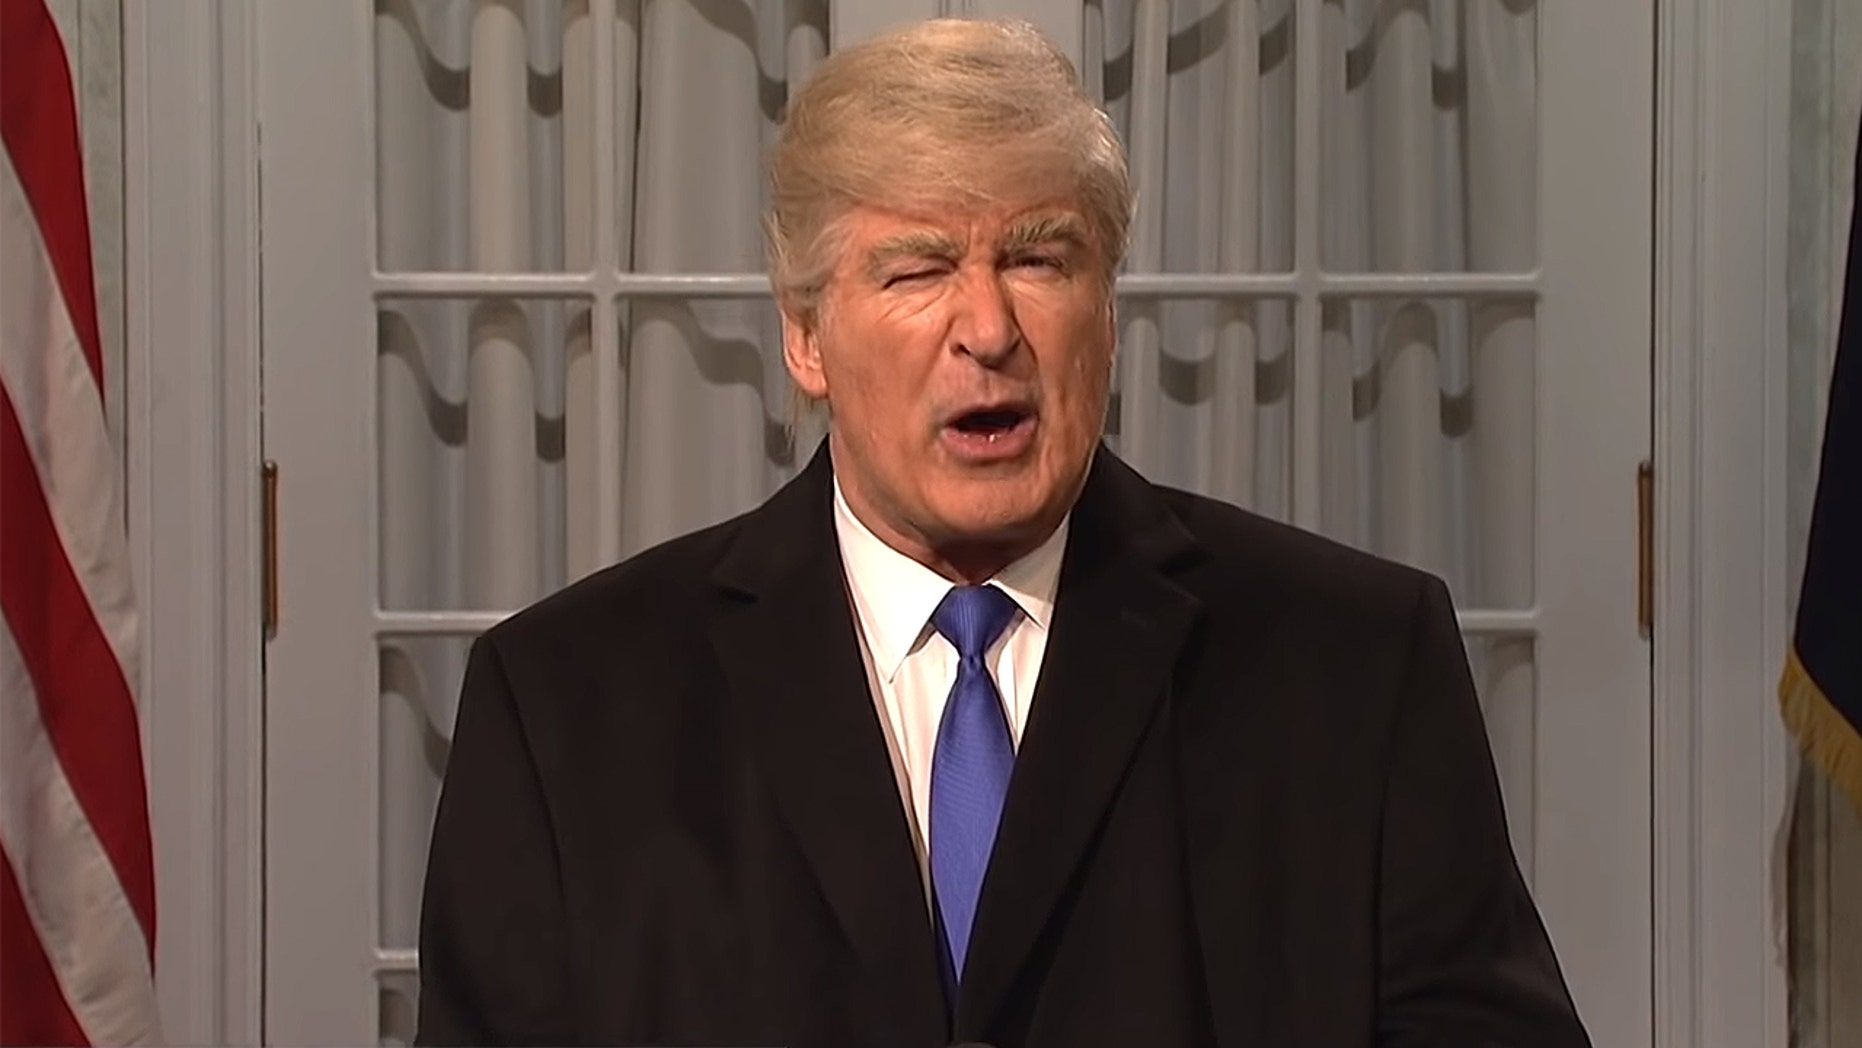 Daddy won, Alec Baldwins Trump boasts in first SNL since end of Mueller probe